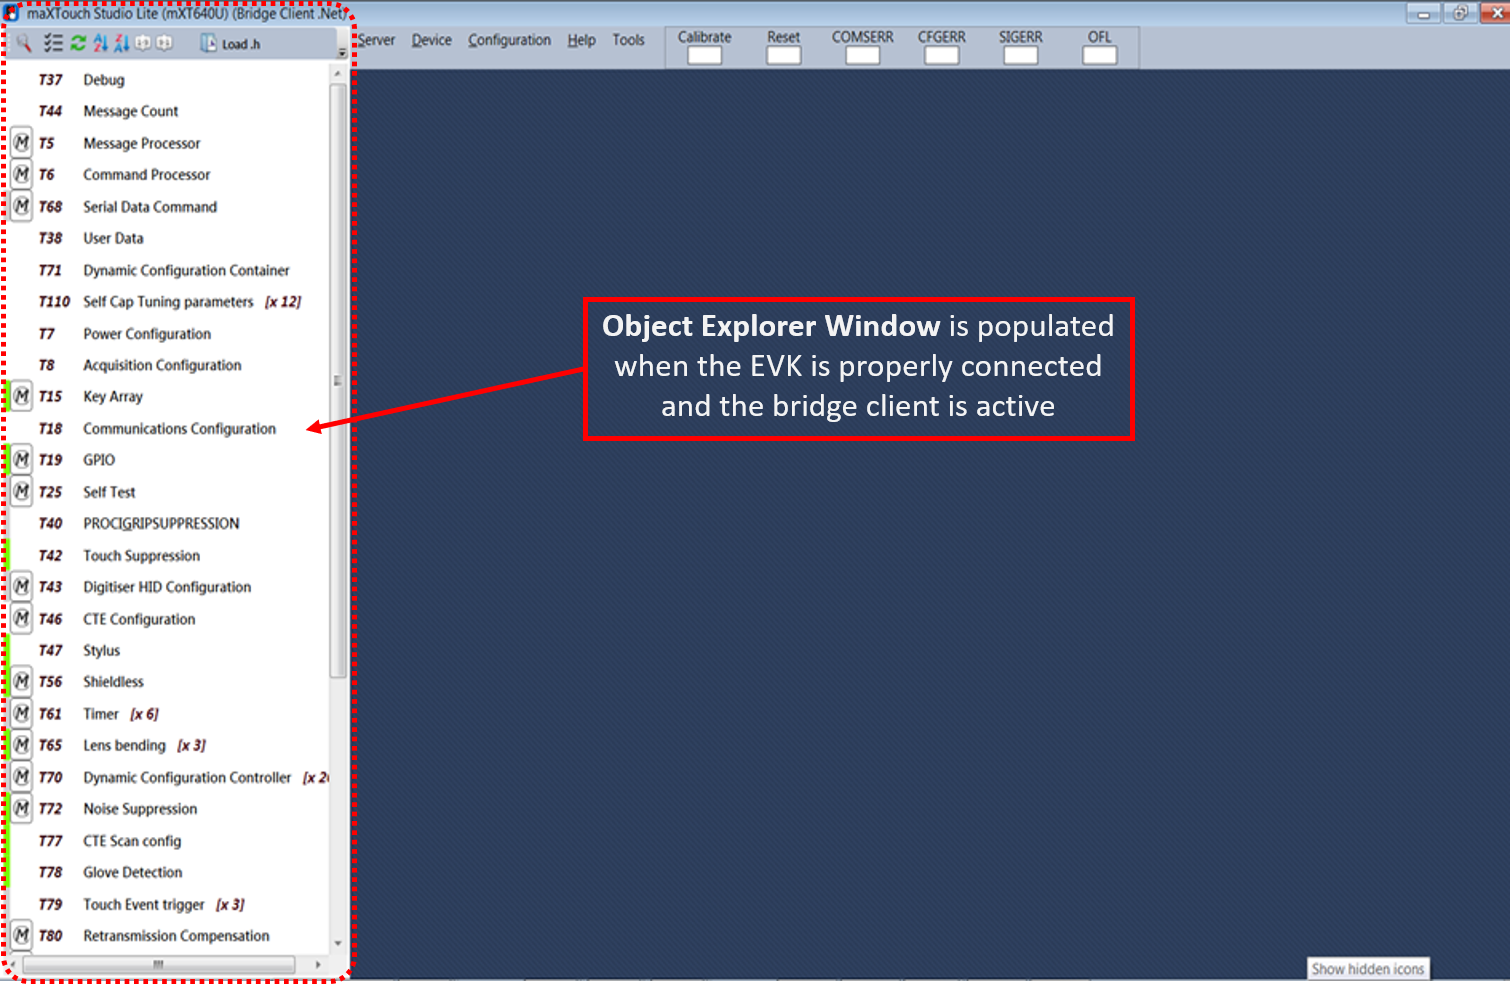 ObjectExplorerWindow.png